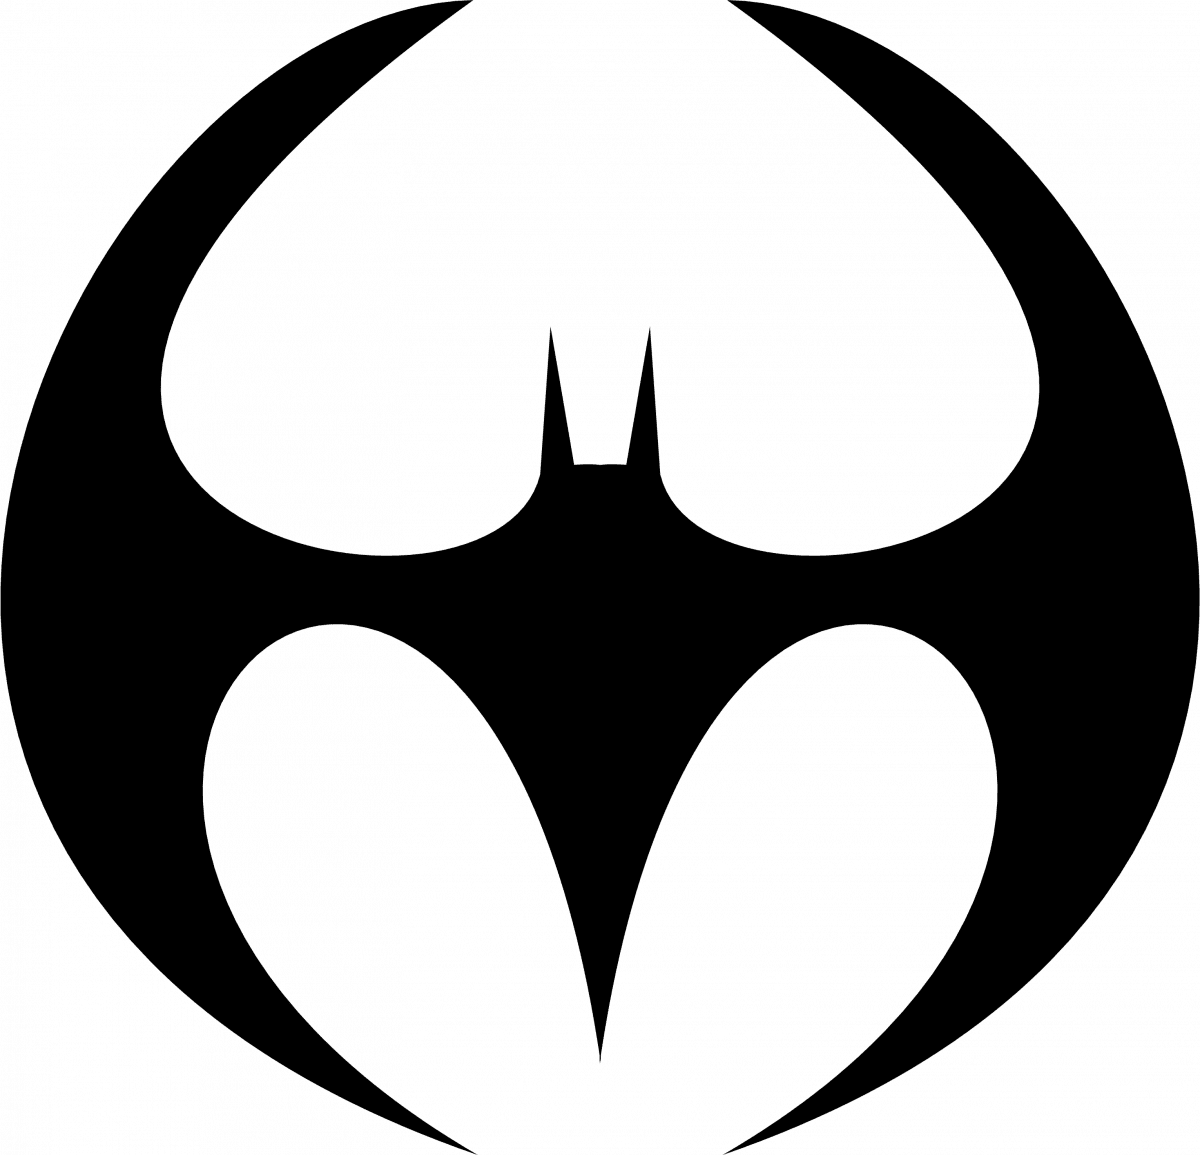 The Batman Symbol Everything You Want To Know